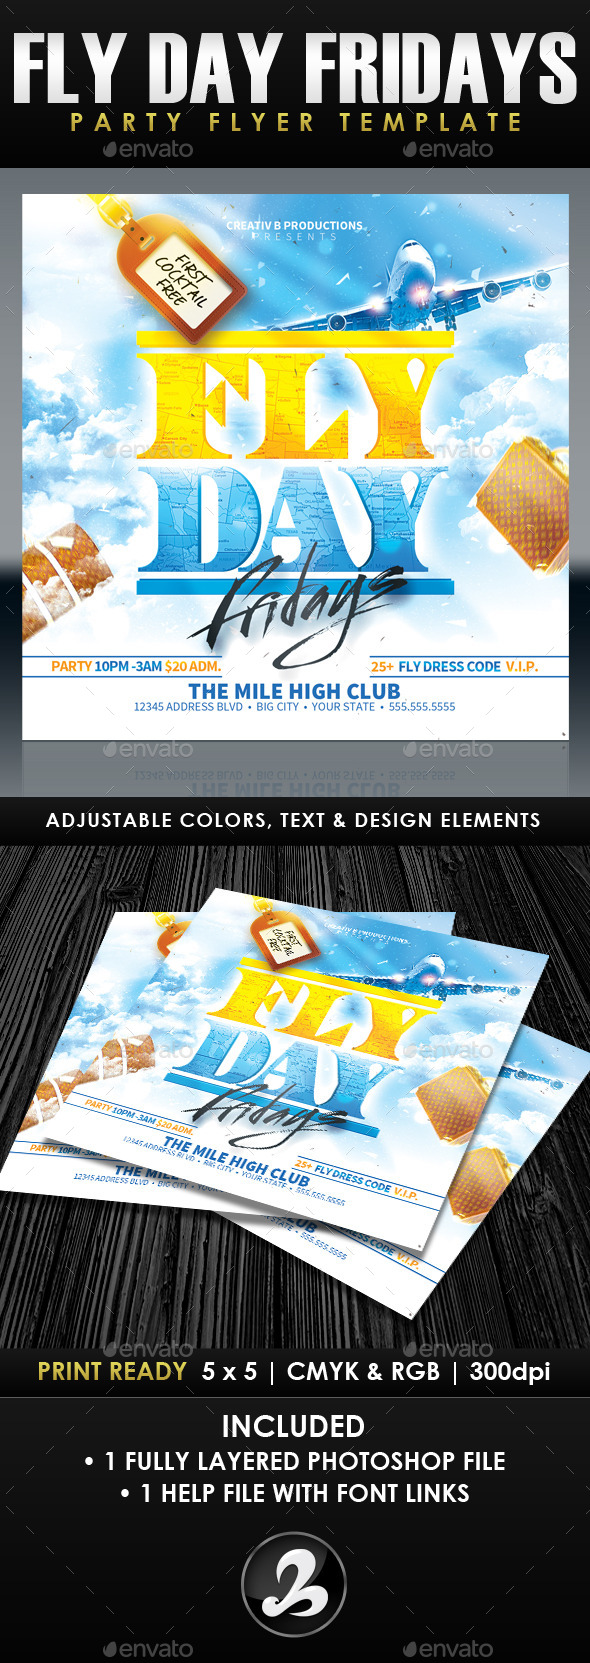 Fly Day Fridays Party Flyer Template - Clubs & Parties Events